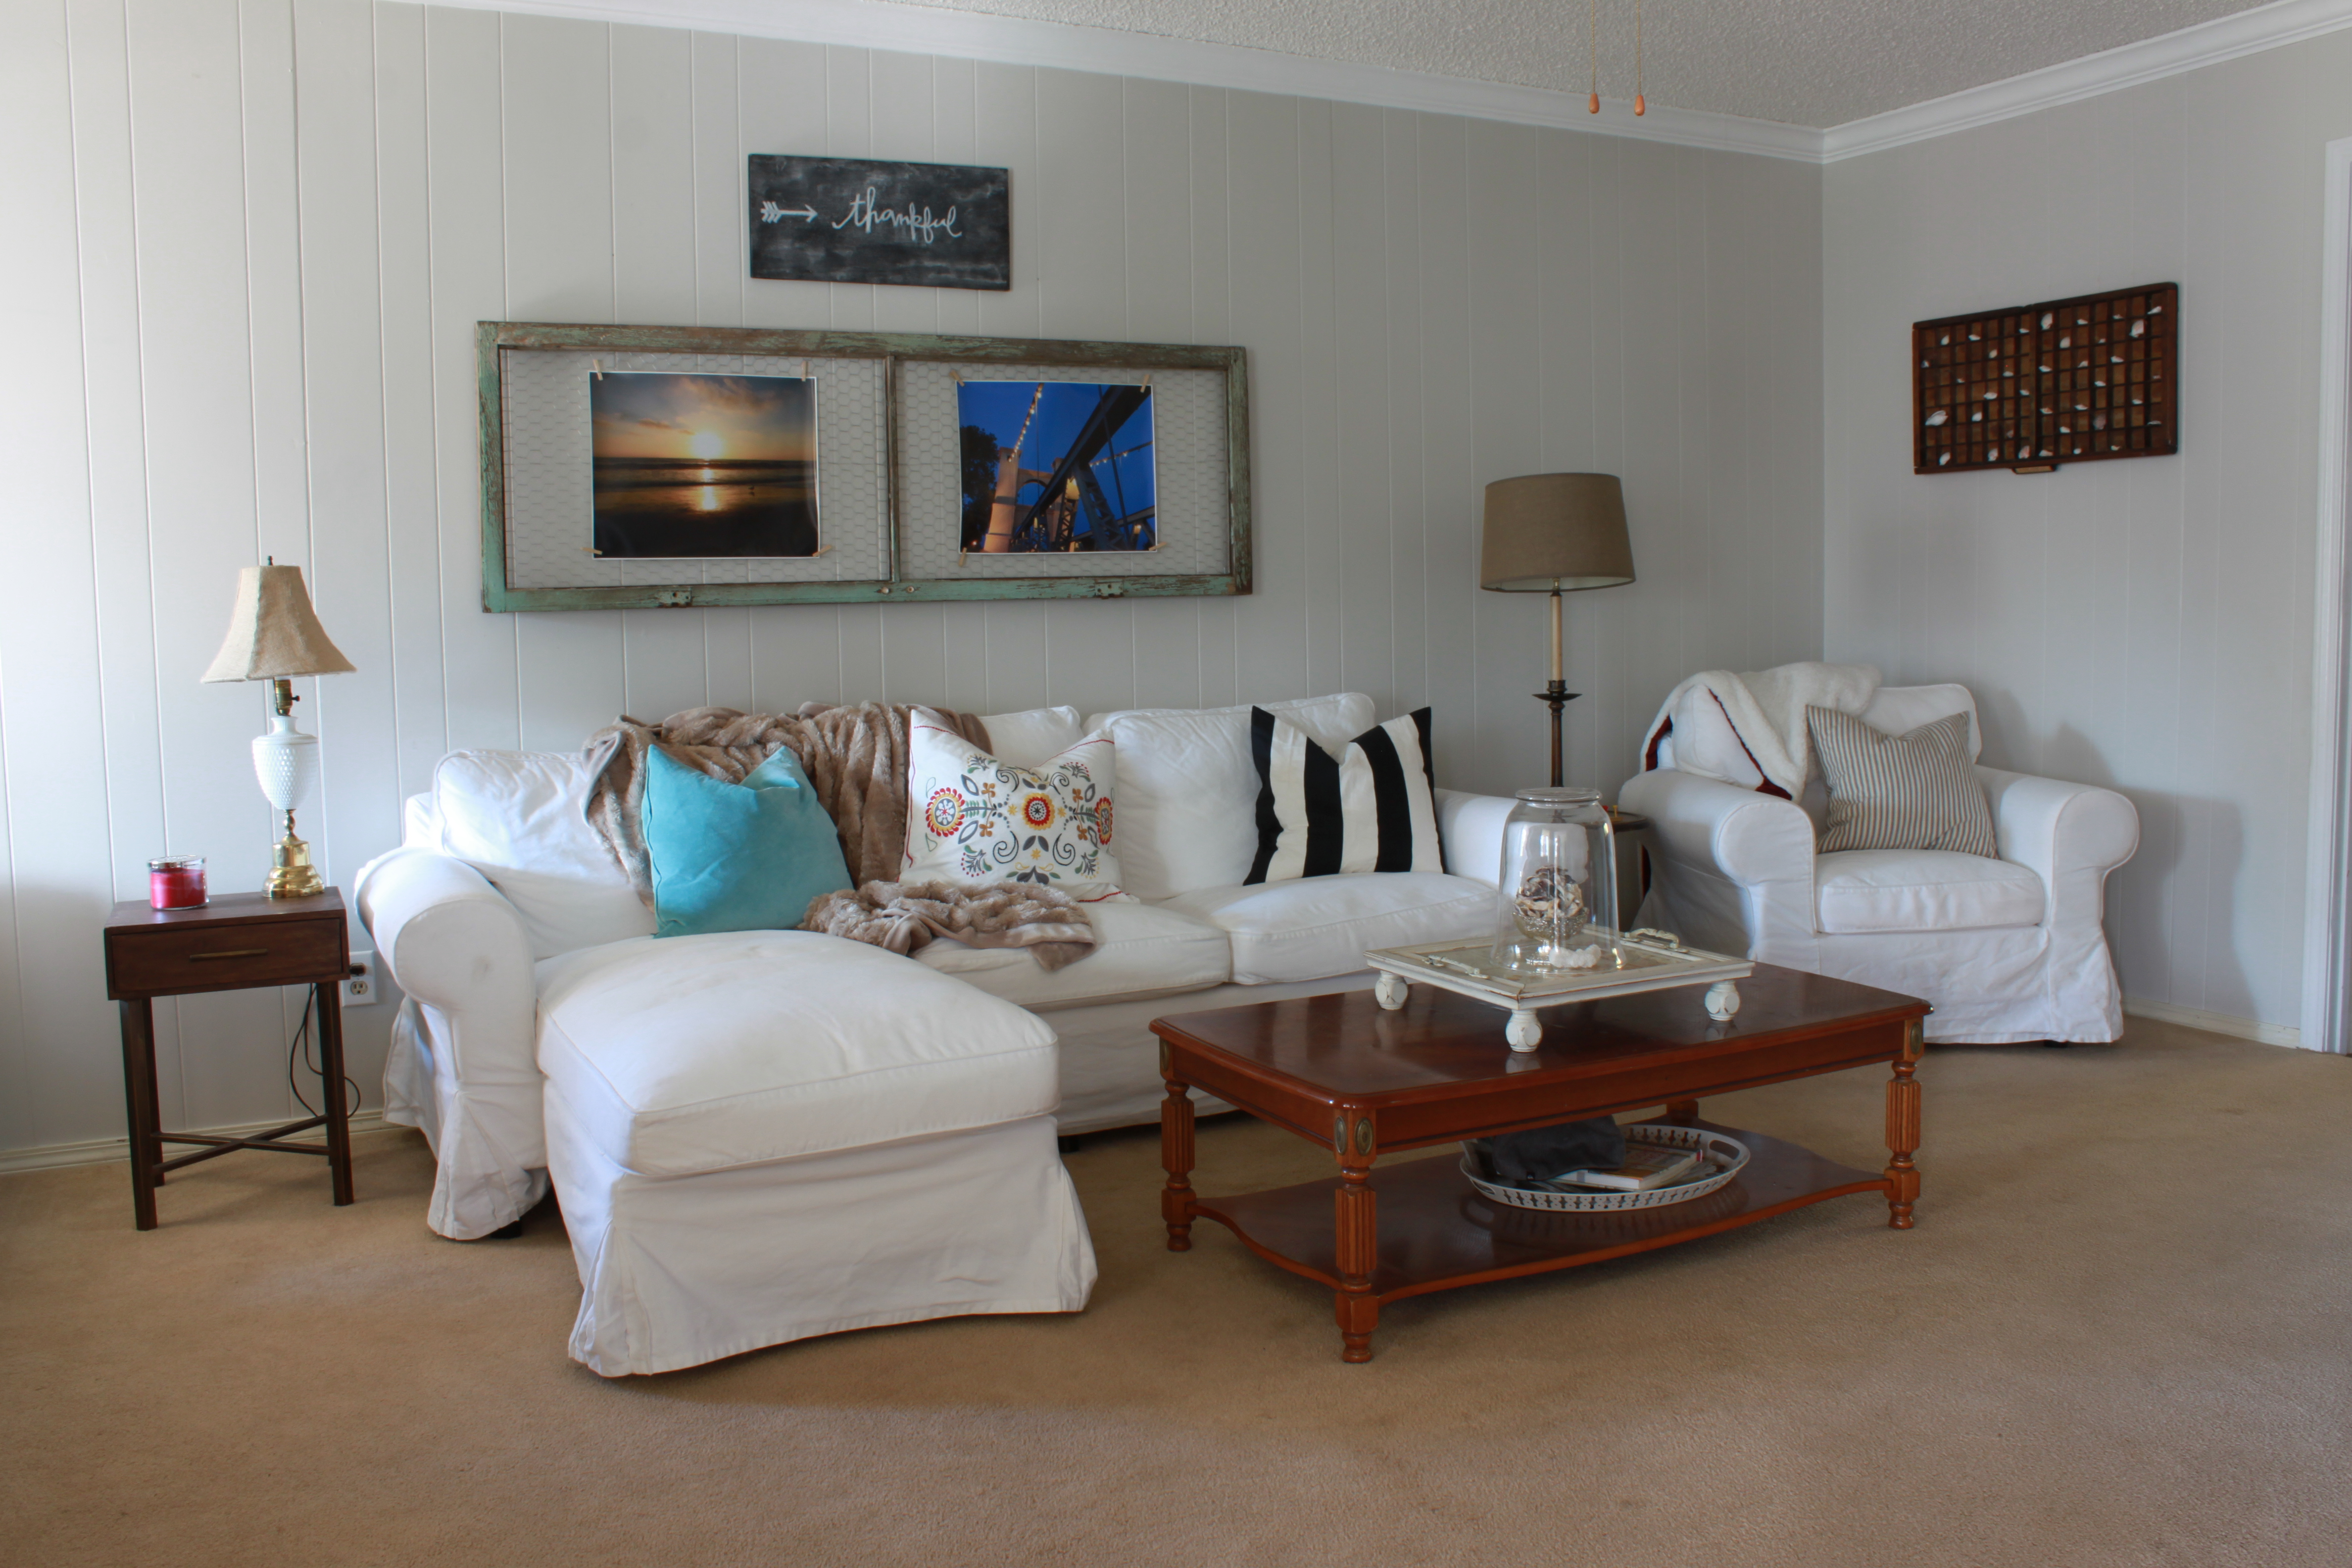 It makes such a difference in the room to have the white sofas  It really  brightens up the space and makes it feel more clean and modern. Switching Instead of Buying   All Things New Interiors